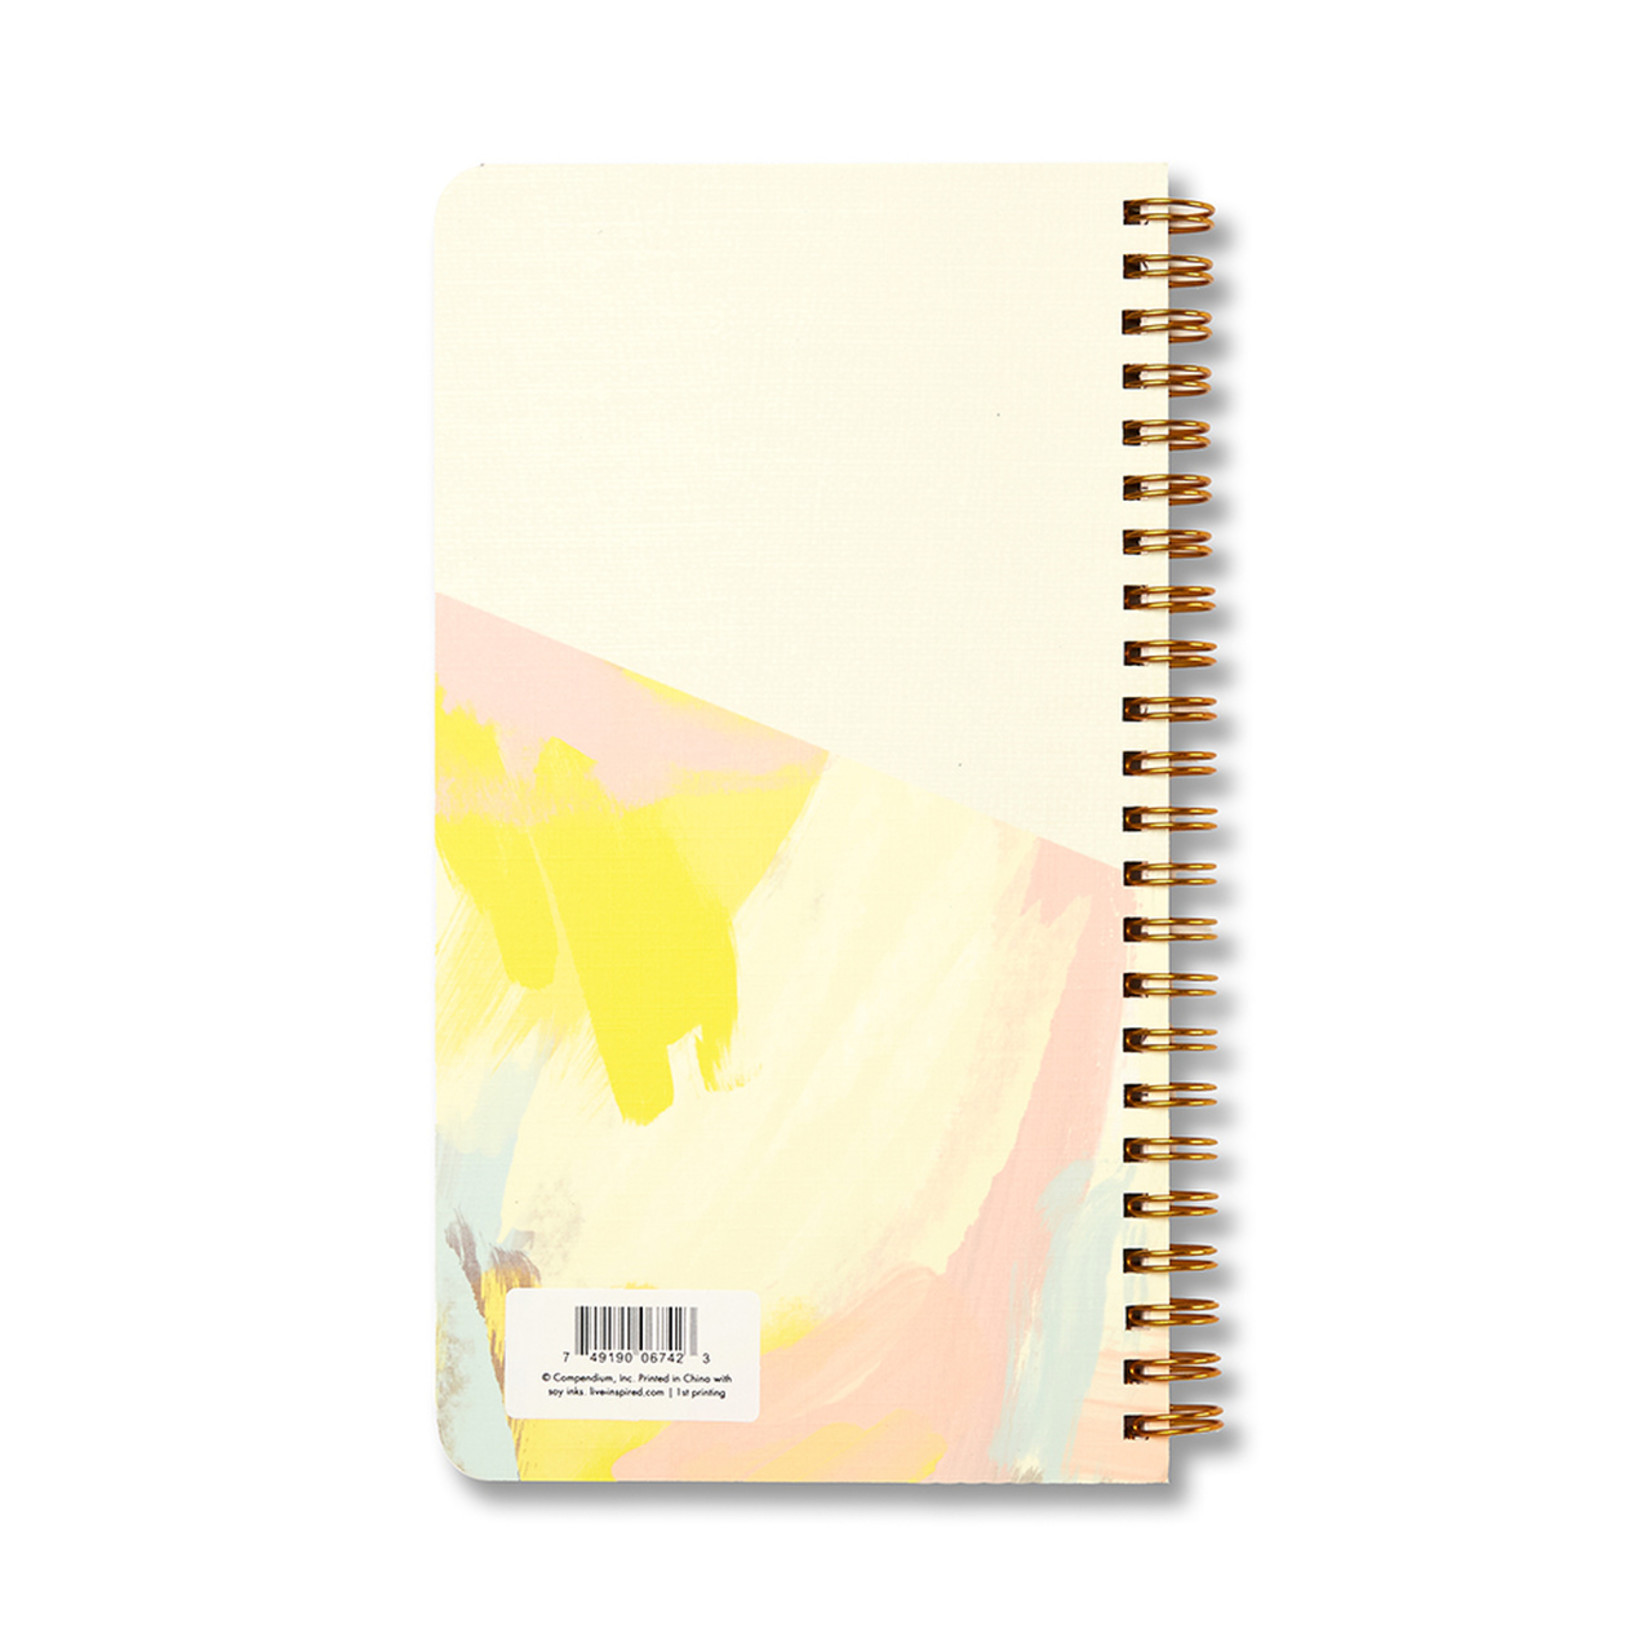 WEEKLY PLANNER - ALL MANNER OF WONDROUS THINGS